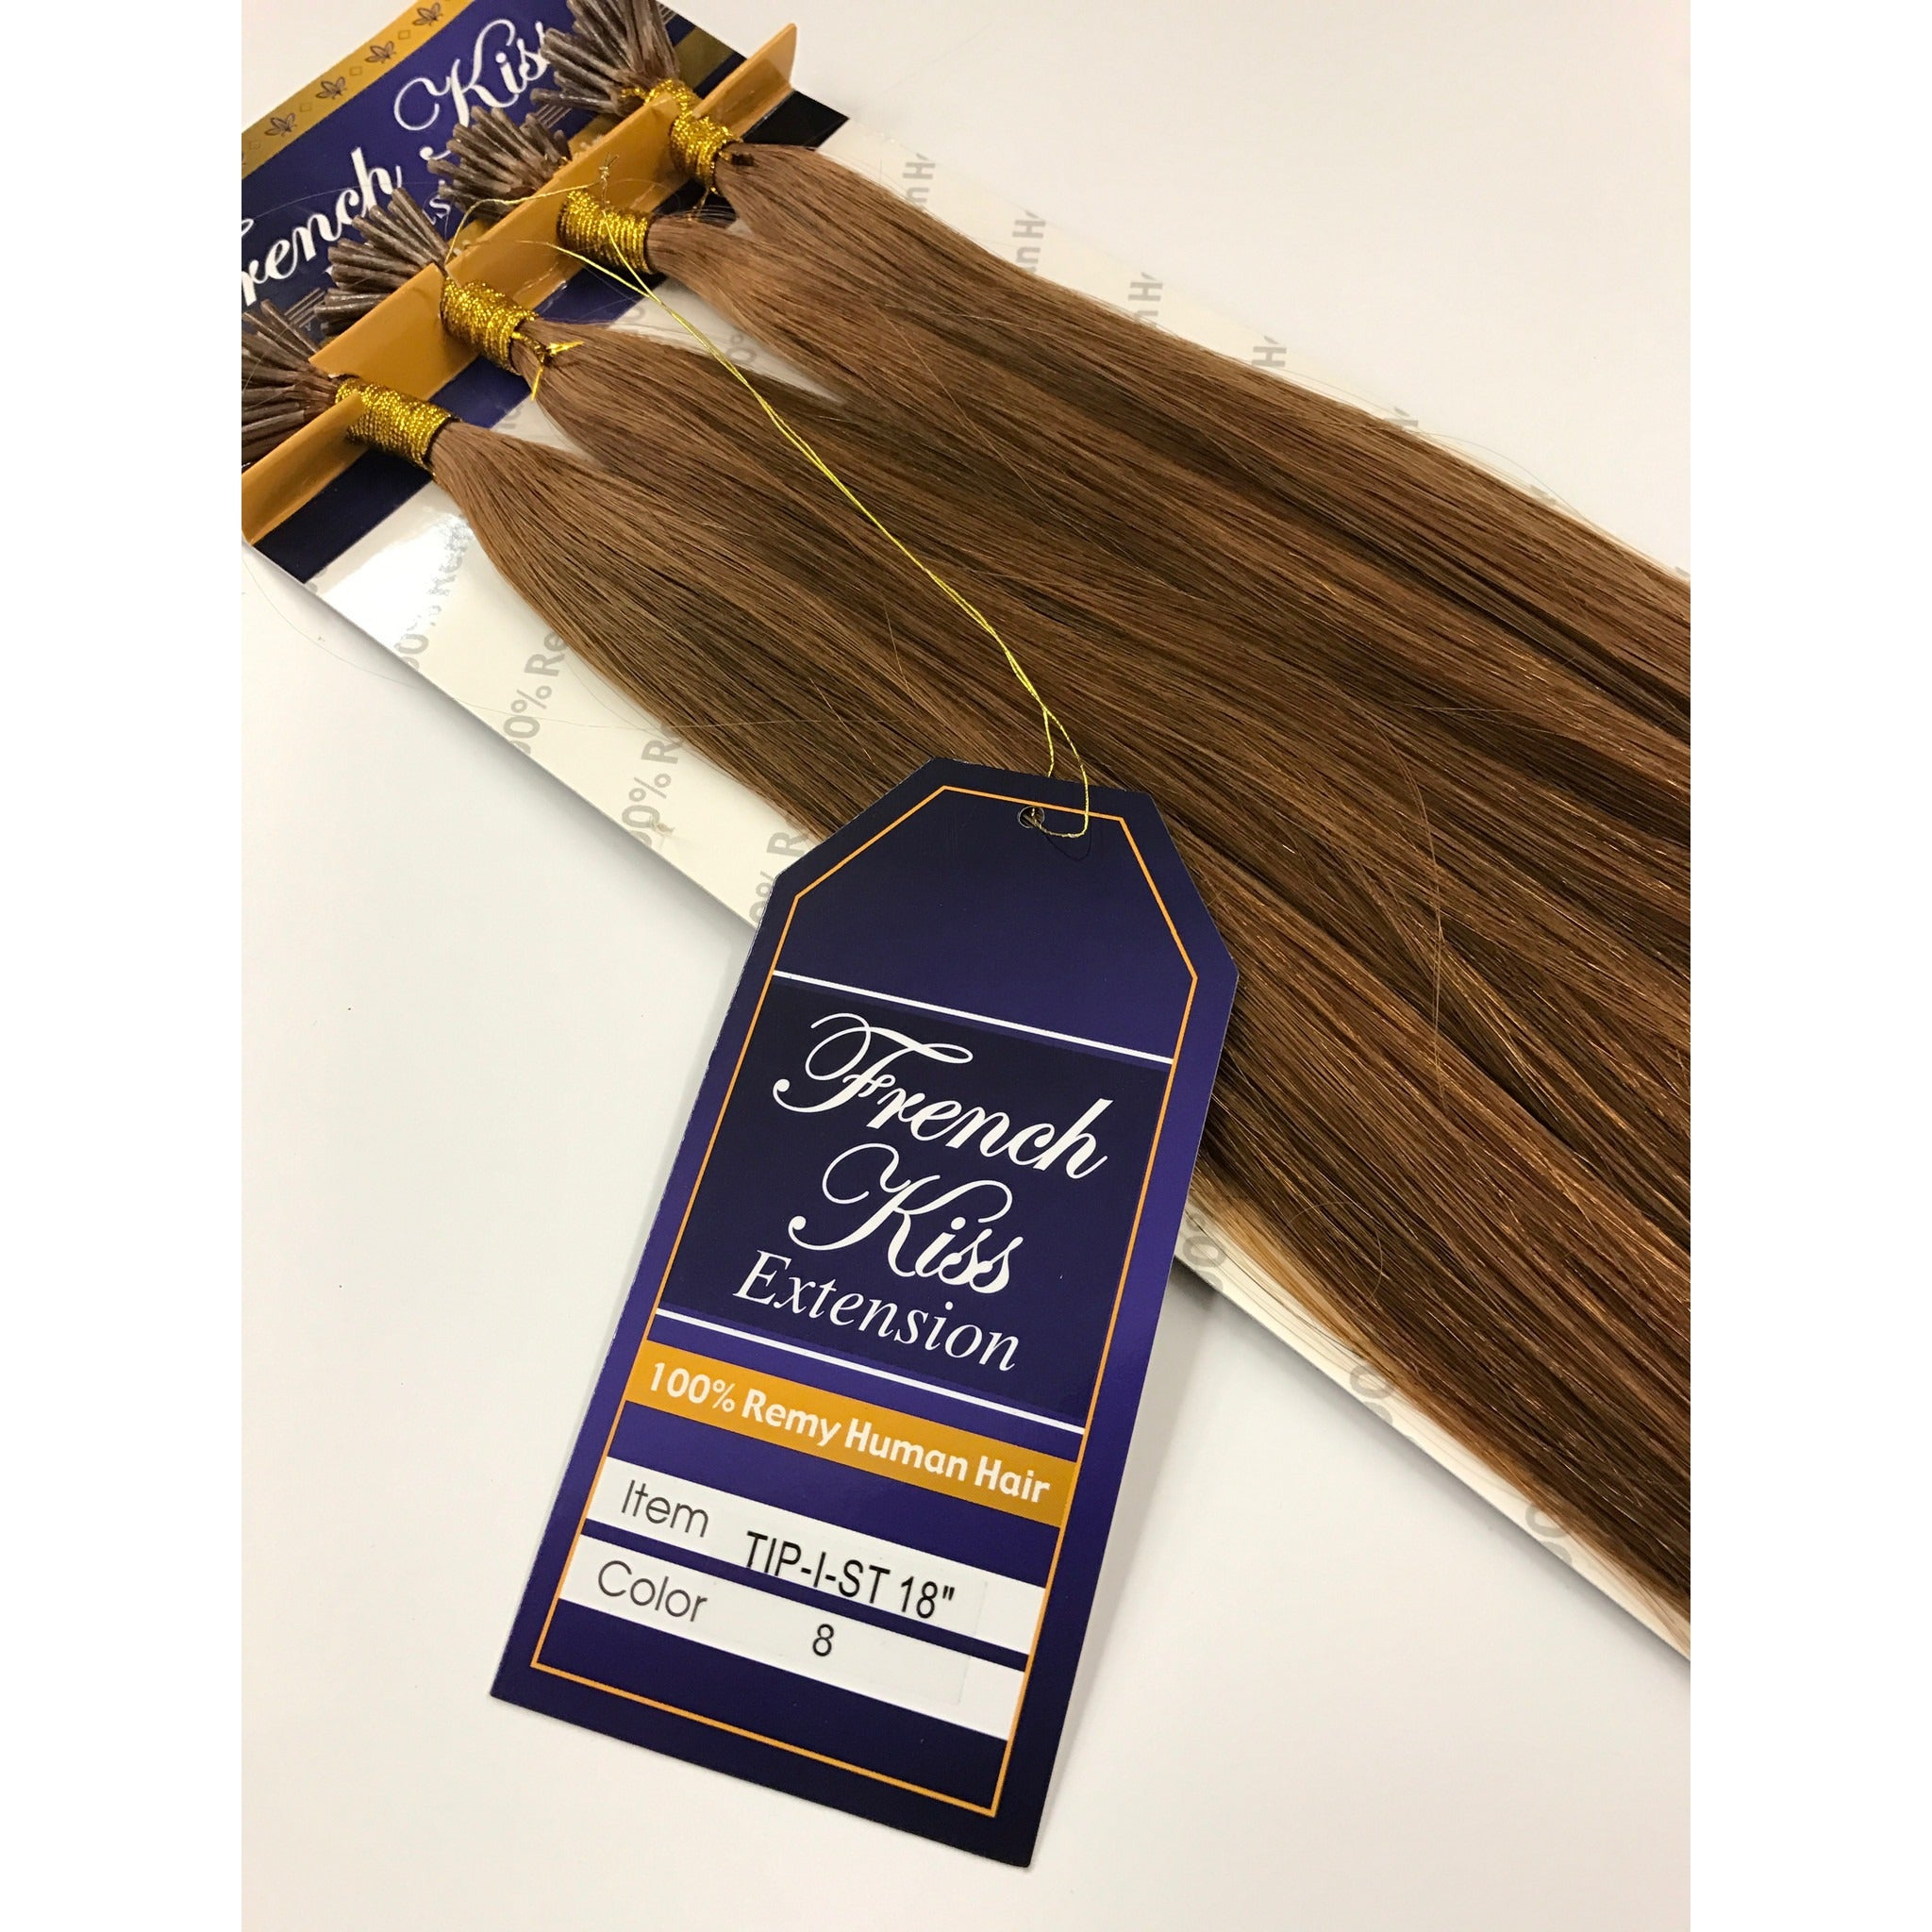 FRENCH KISS' I-TIP 100% REMY HUMAN HAIR - Waba Hair and Beauty Supply